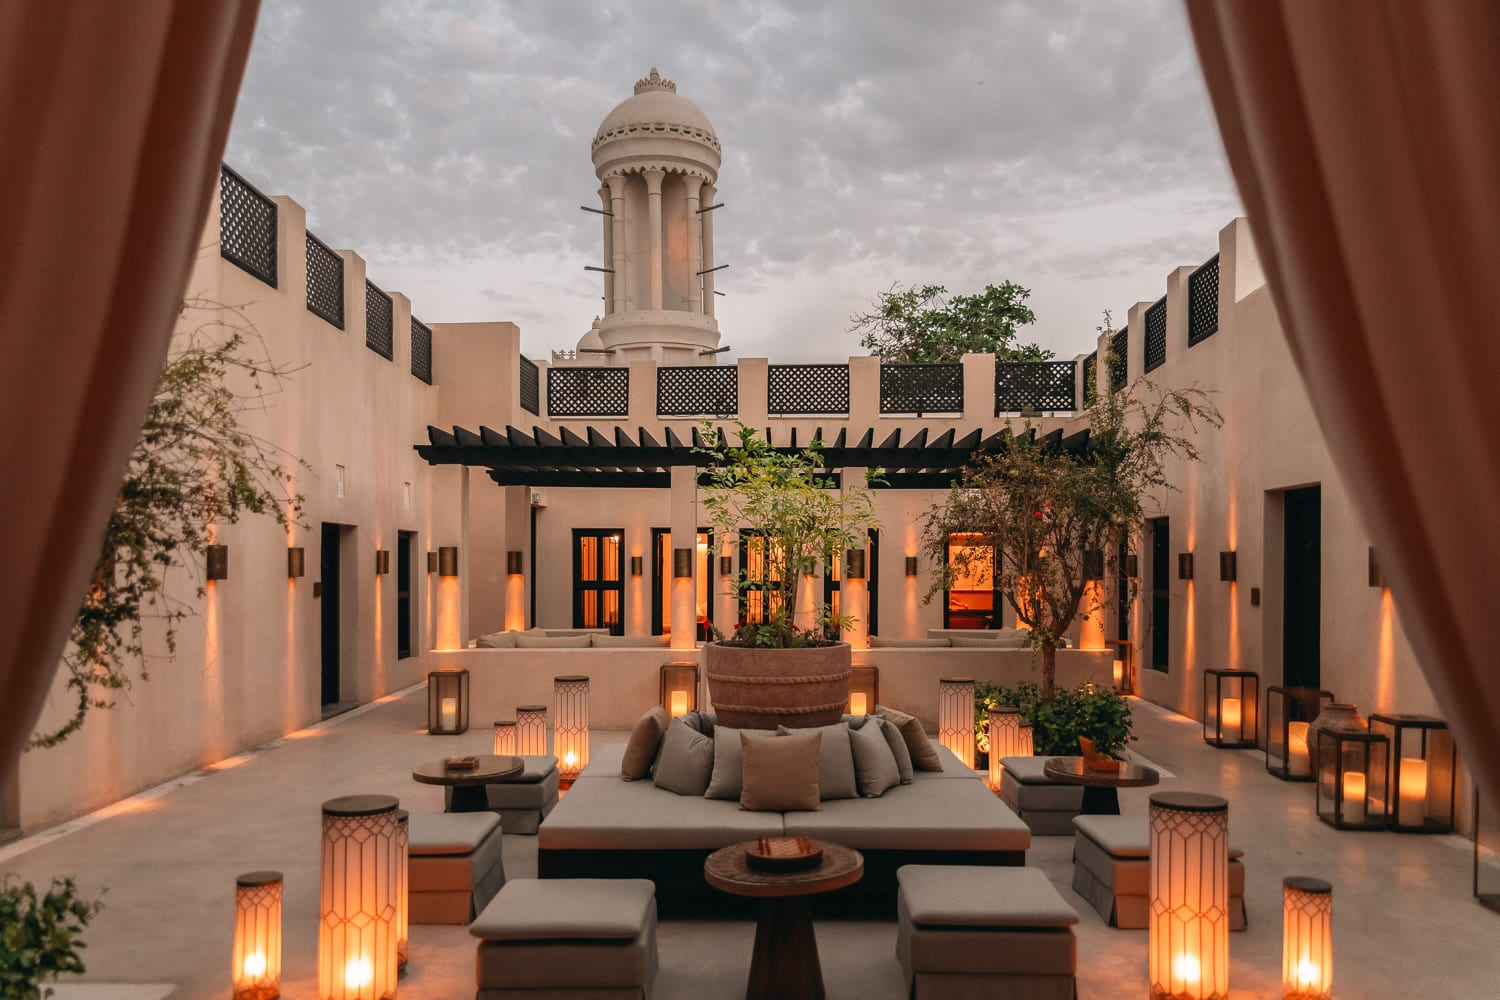 Al Bait Sharjah Resort Hotellrecension - Femstjärnigt boutiquehotell i Förenade Arabemiraten